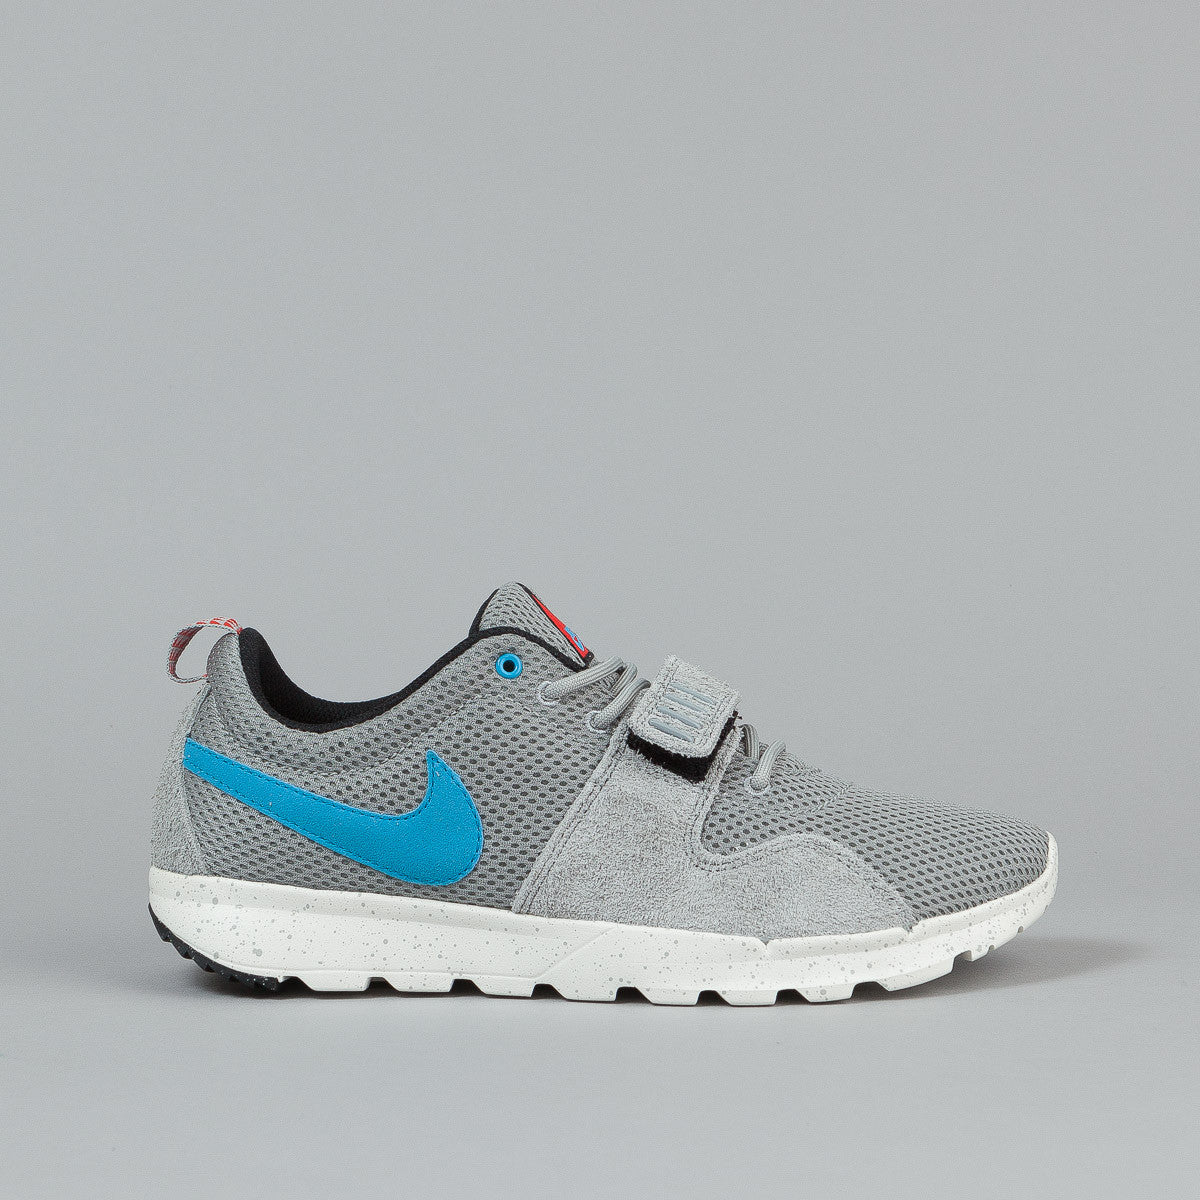 Nike SB Trainerendor Shoes